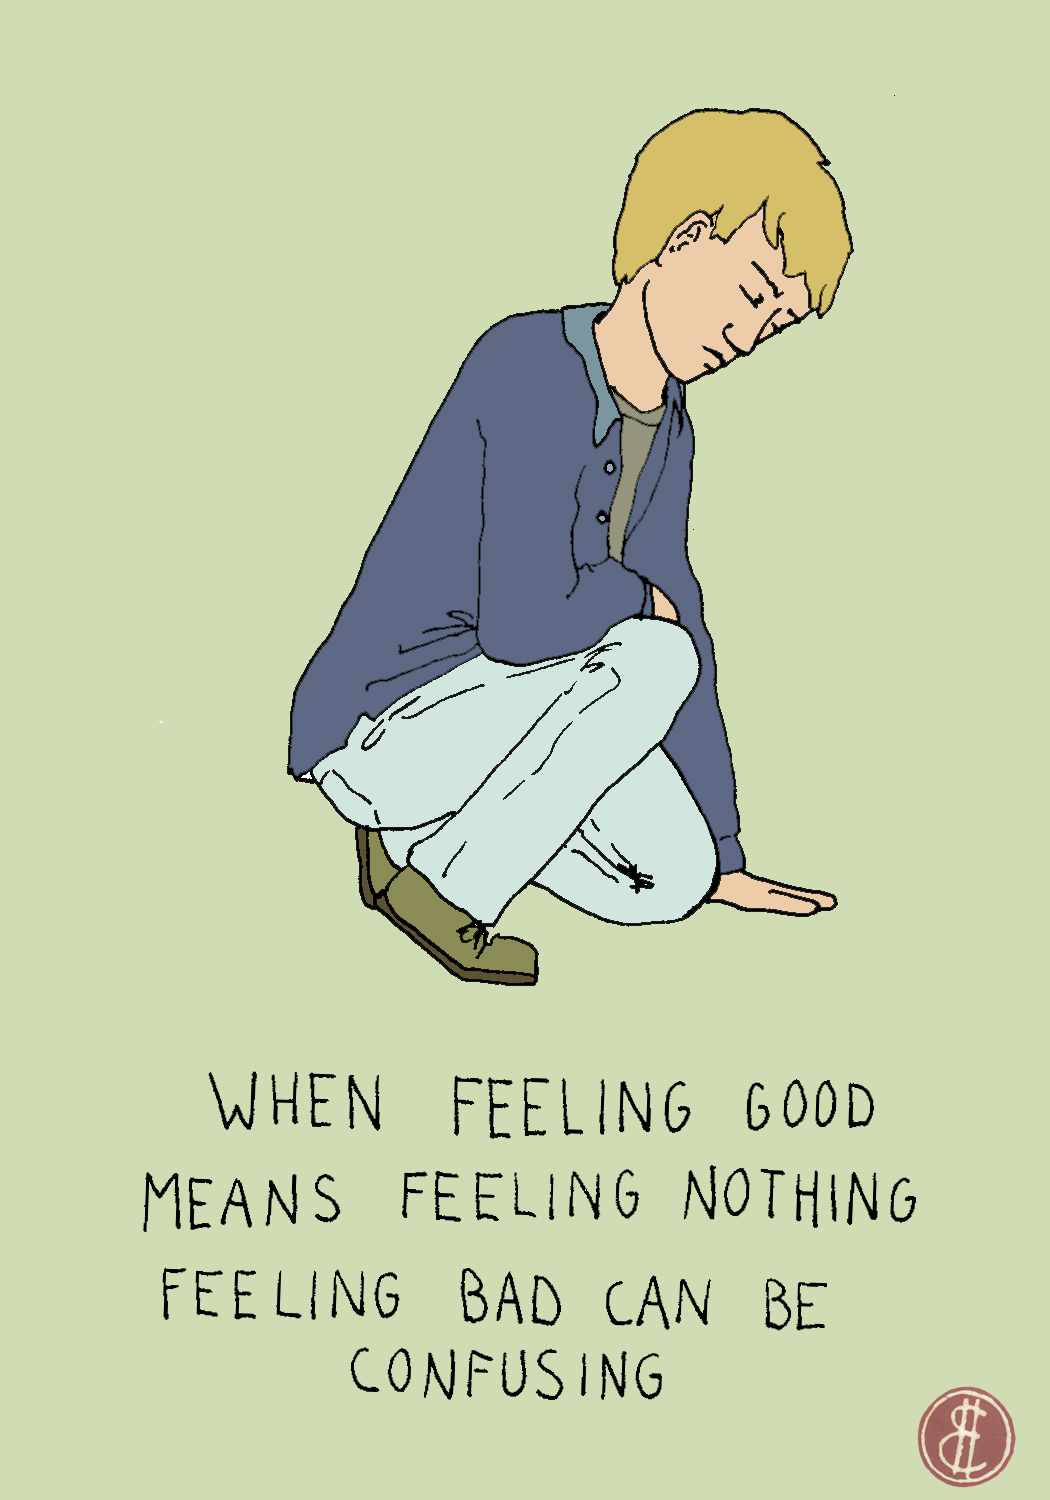 Feeling nothing